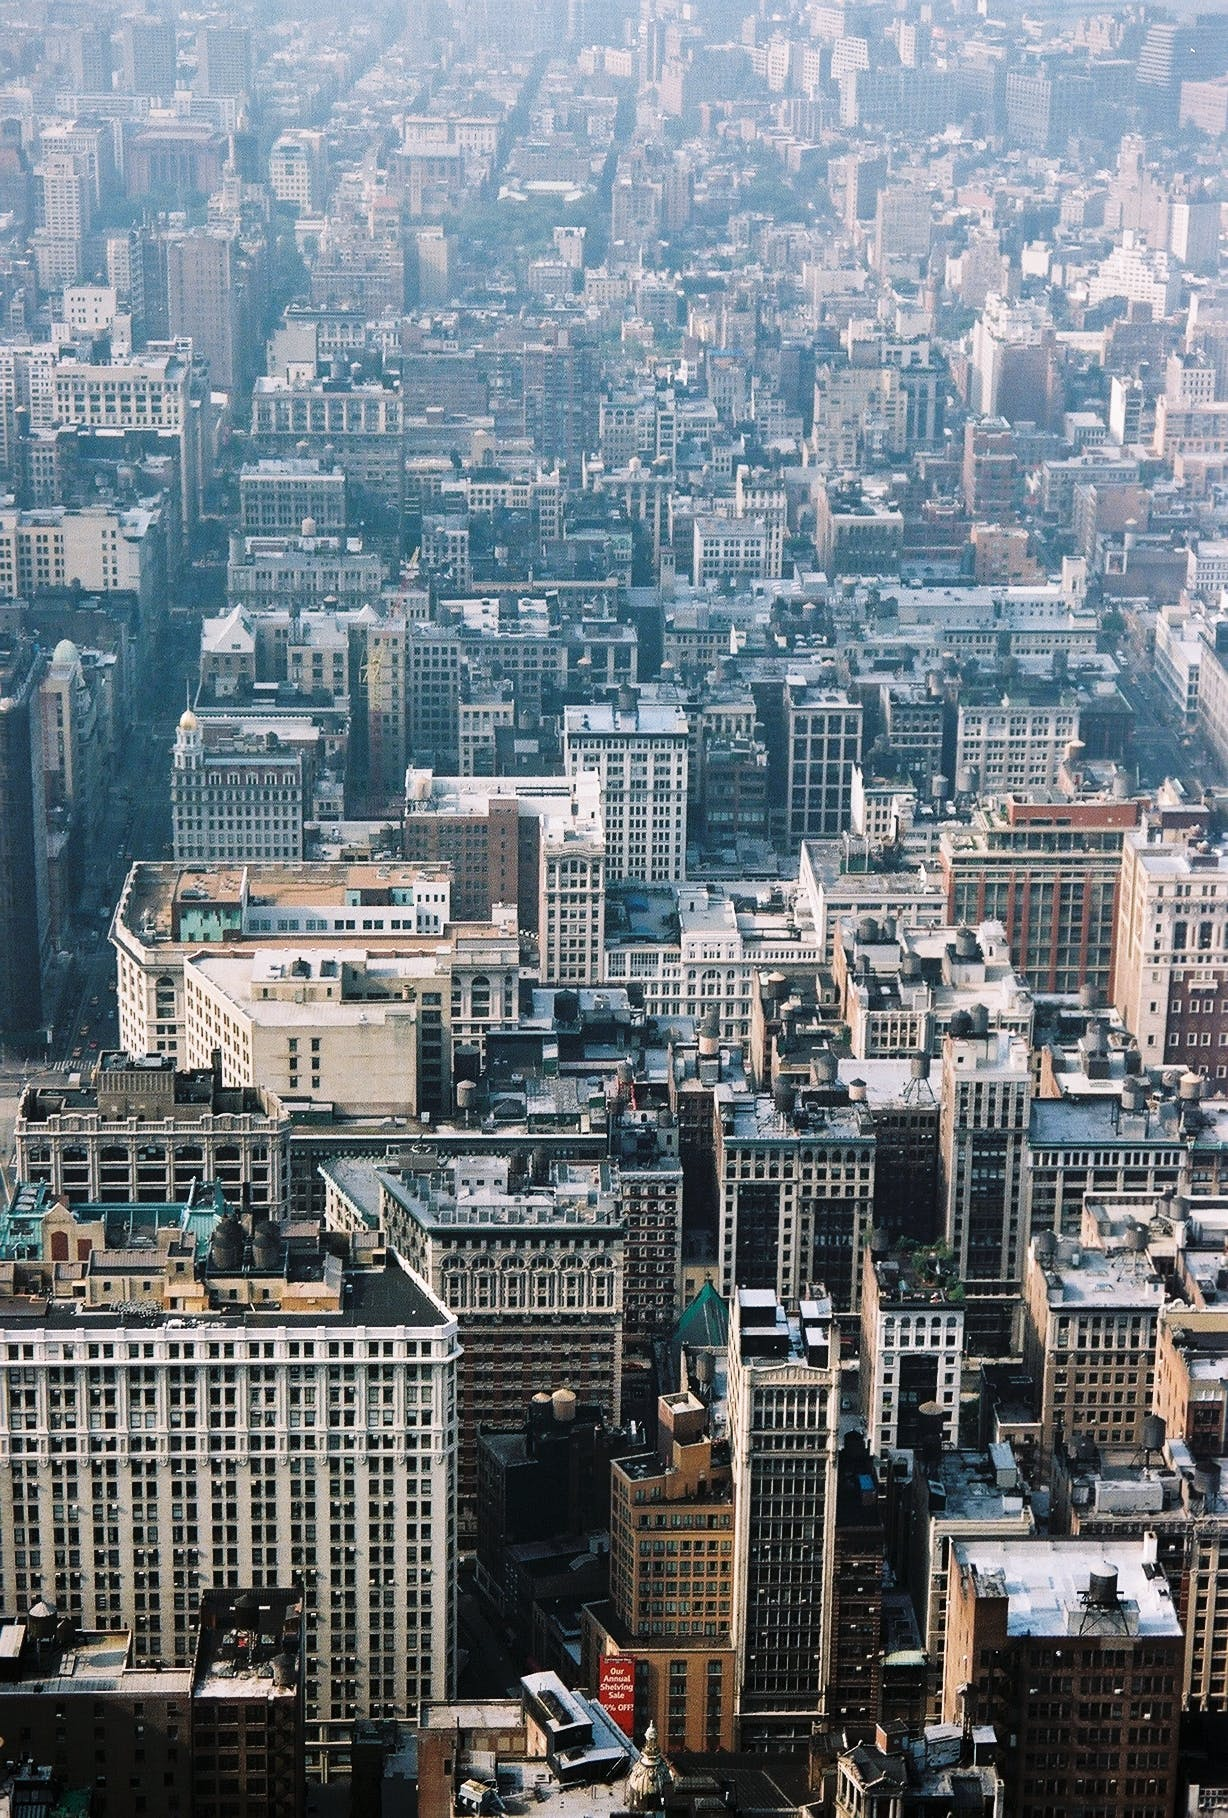 City Buildings Aerial Photography